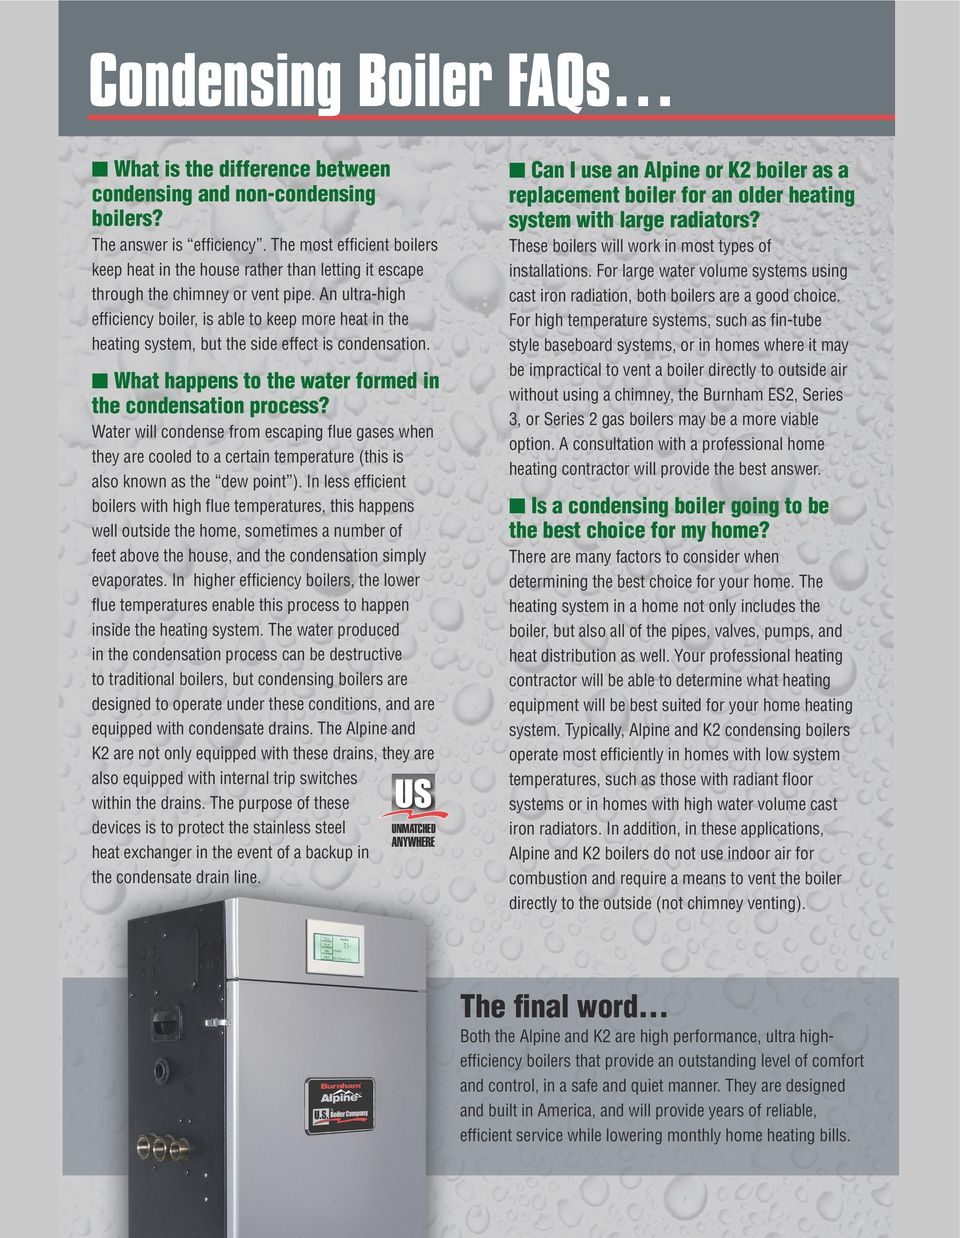 Condensation boiler: pros and cons